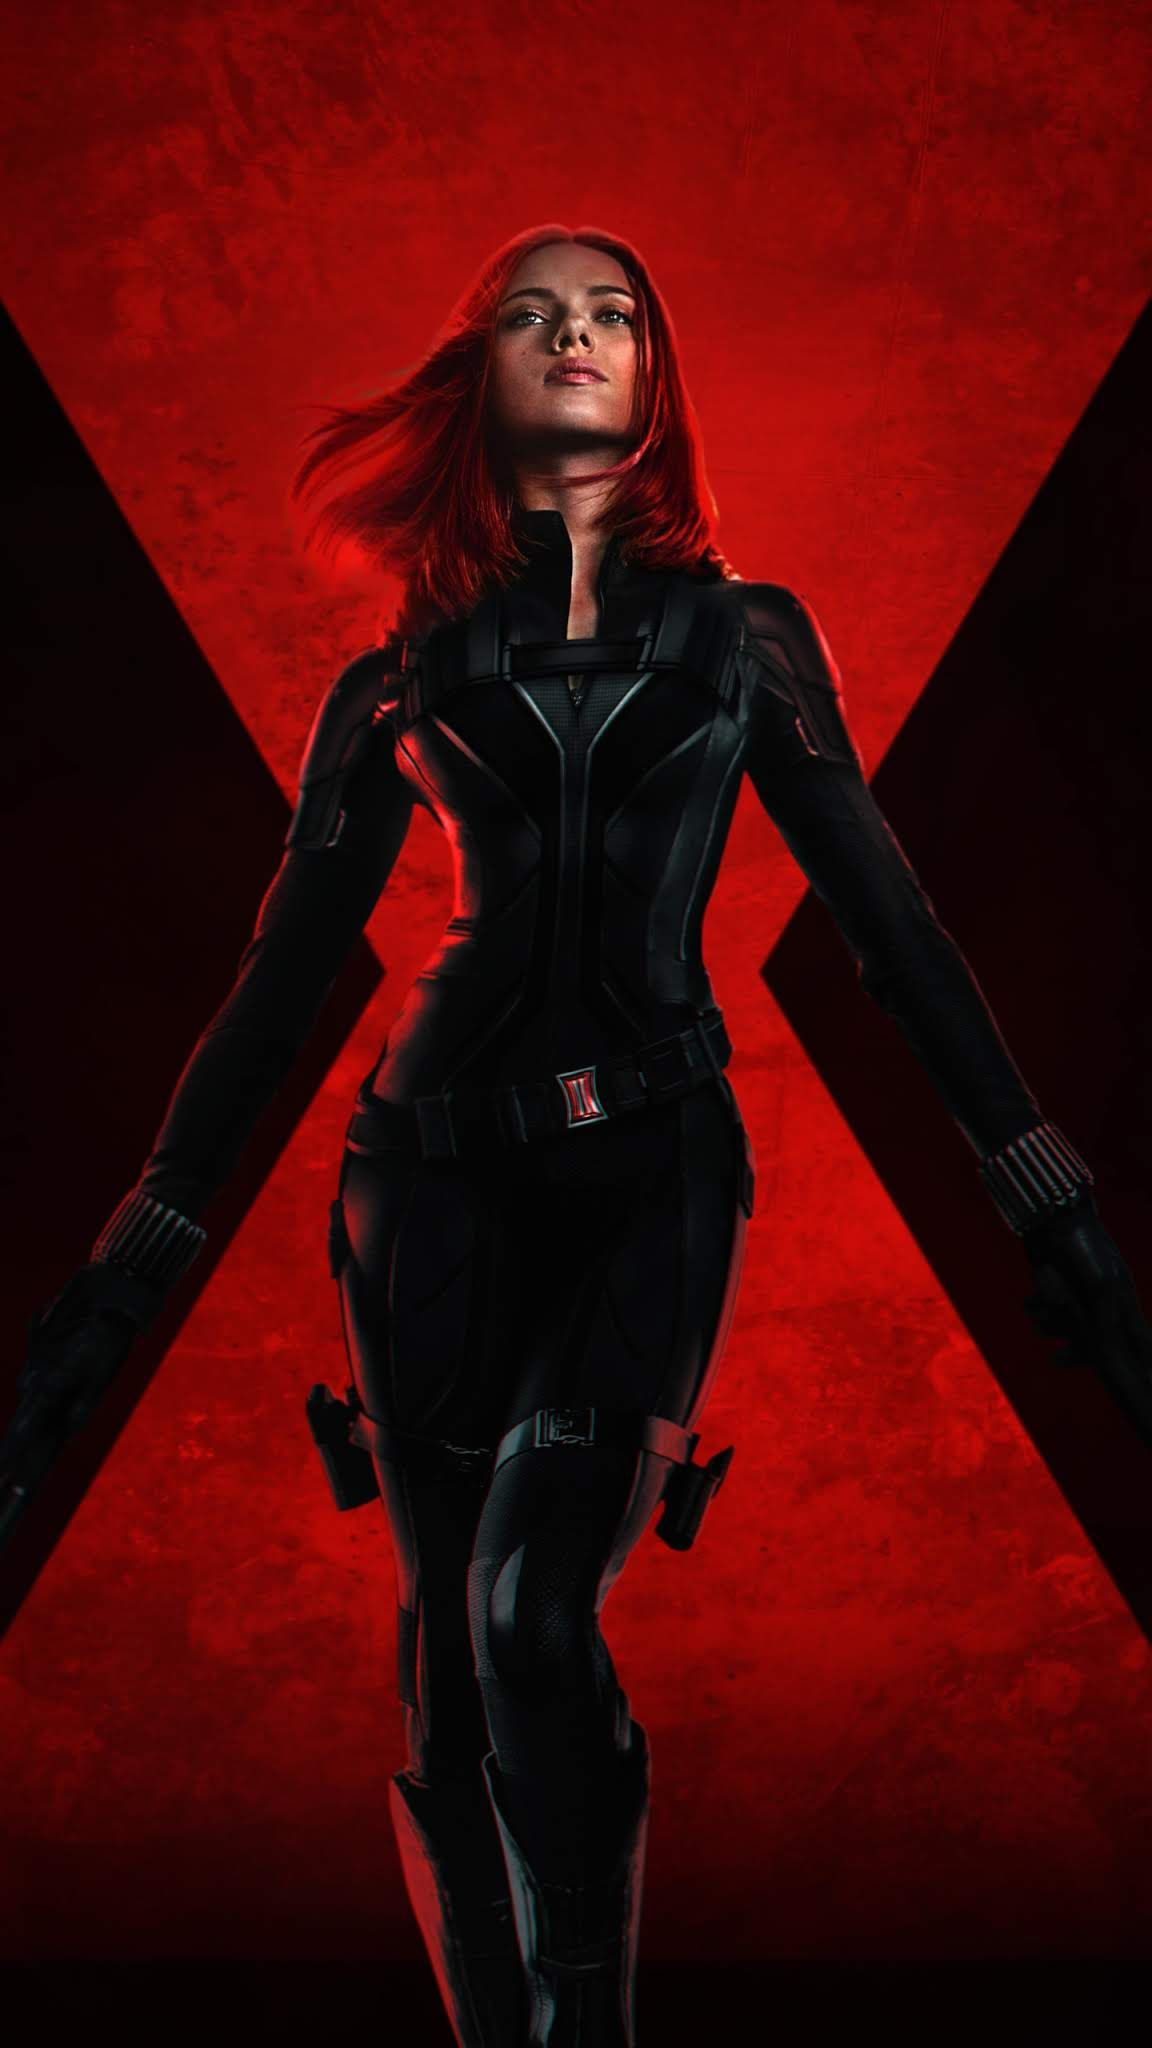 Download Black Widow 2020 Mobile Wallpaper For Your Android Iphone Wallpaper Or Ipad Tablet Wallpapers In In 2020 Black Widow Marvel Black Widow Avengers Black Widow